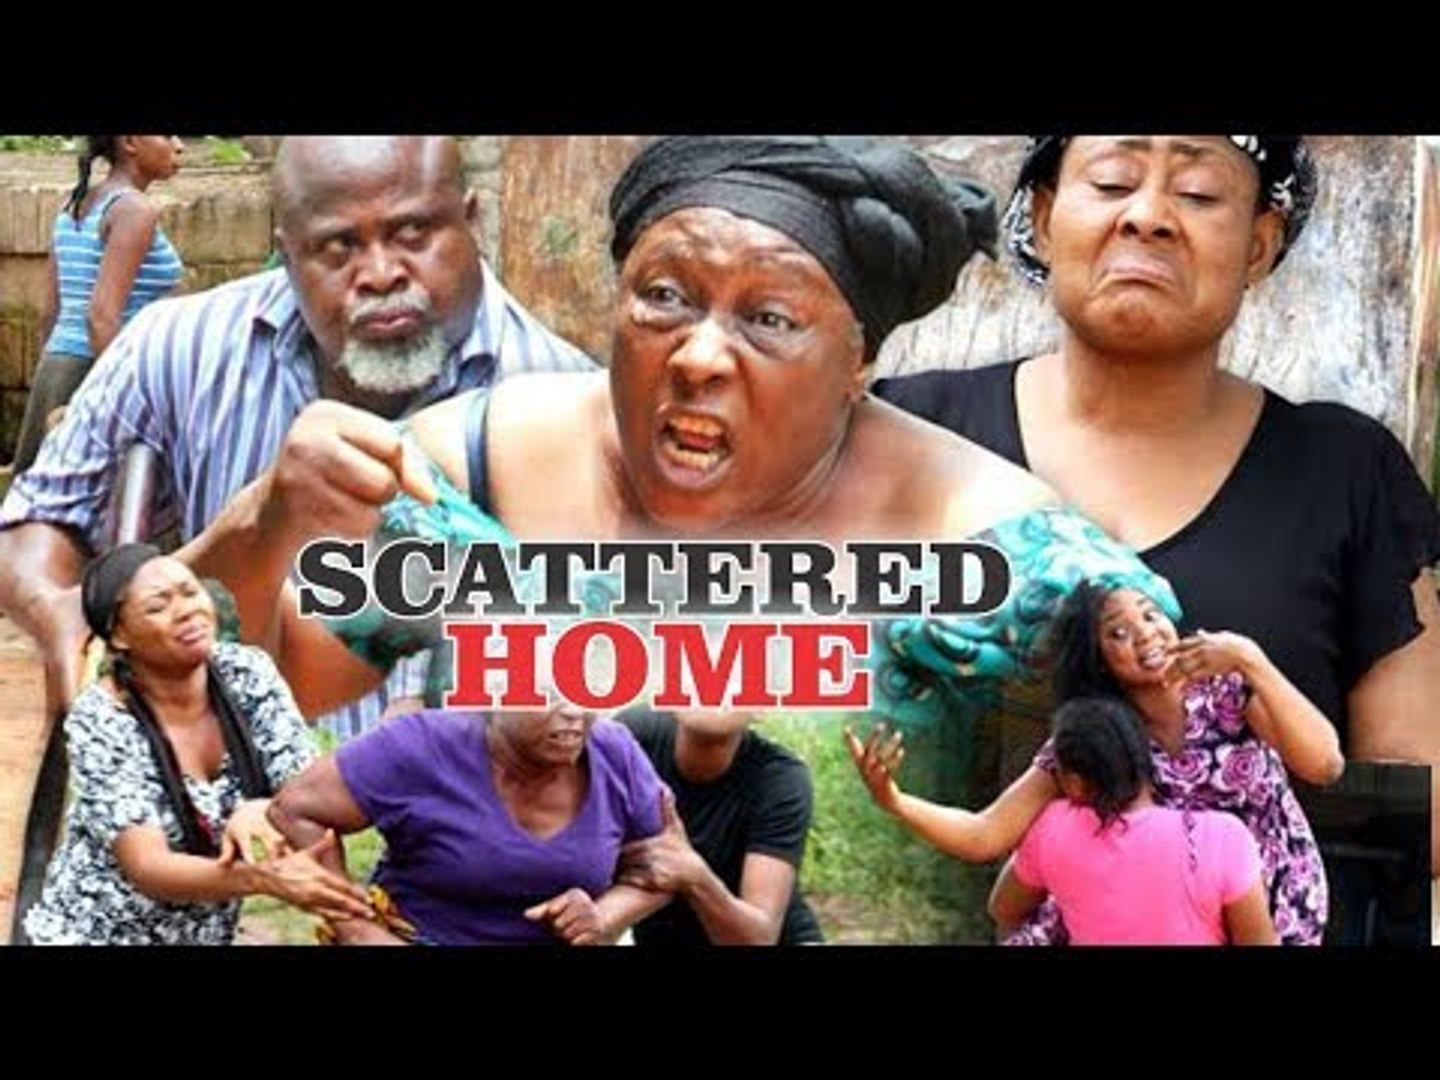 SCATTERED HOME - LATEST NIGERIAN NOLLYWOOD MOVIES || TRENDING NOLLYWOOD MOVIES